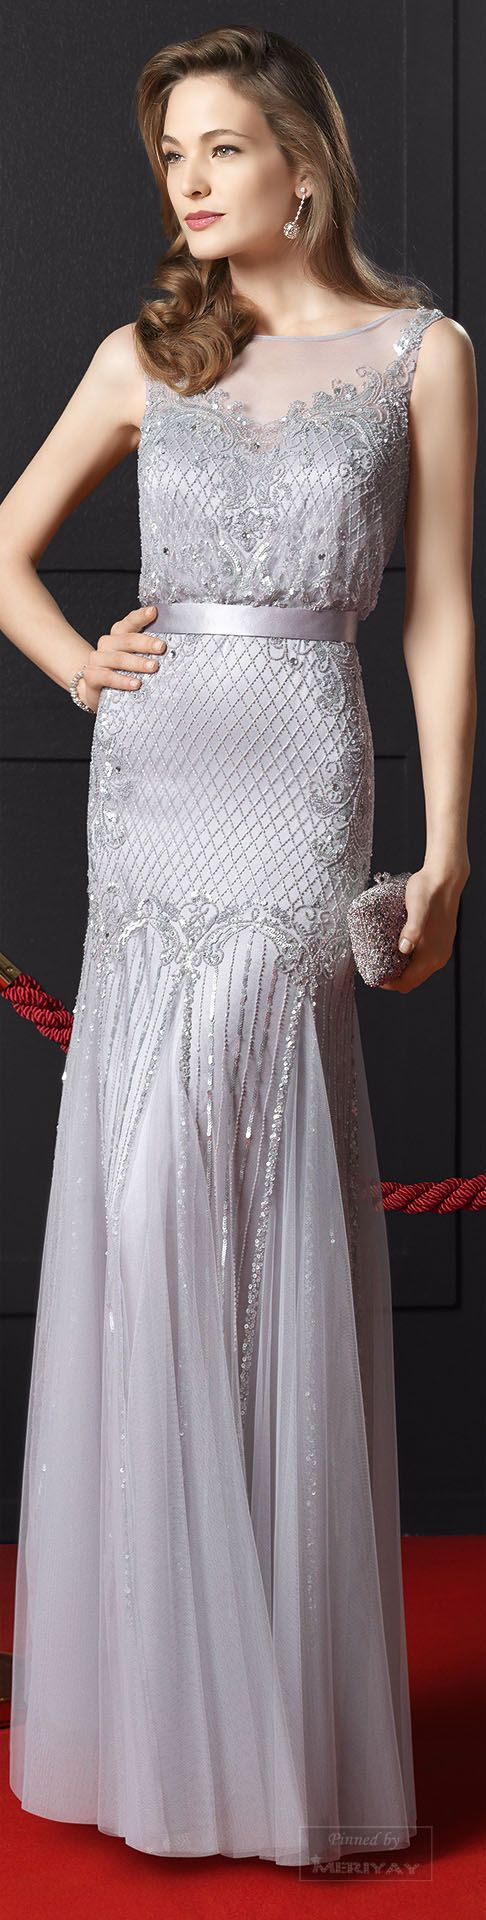 Rosa Clará ~ Romantic Silver Gown w Embroidery+ Lace 2015.